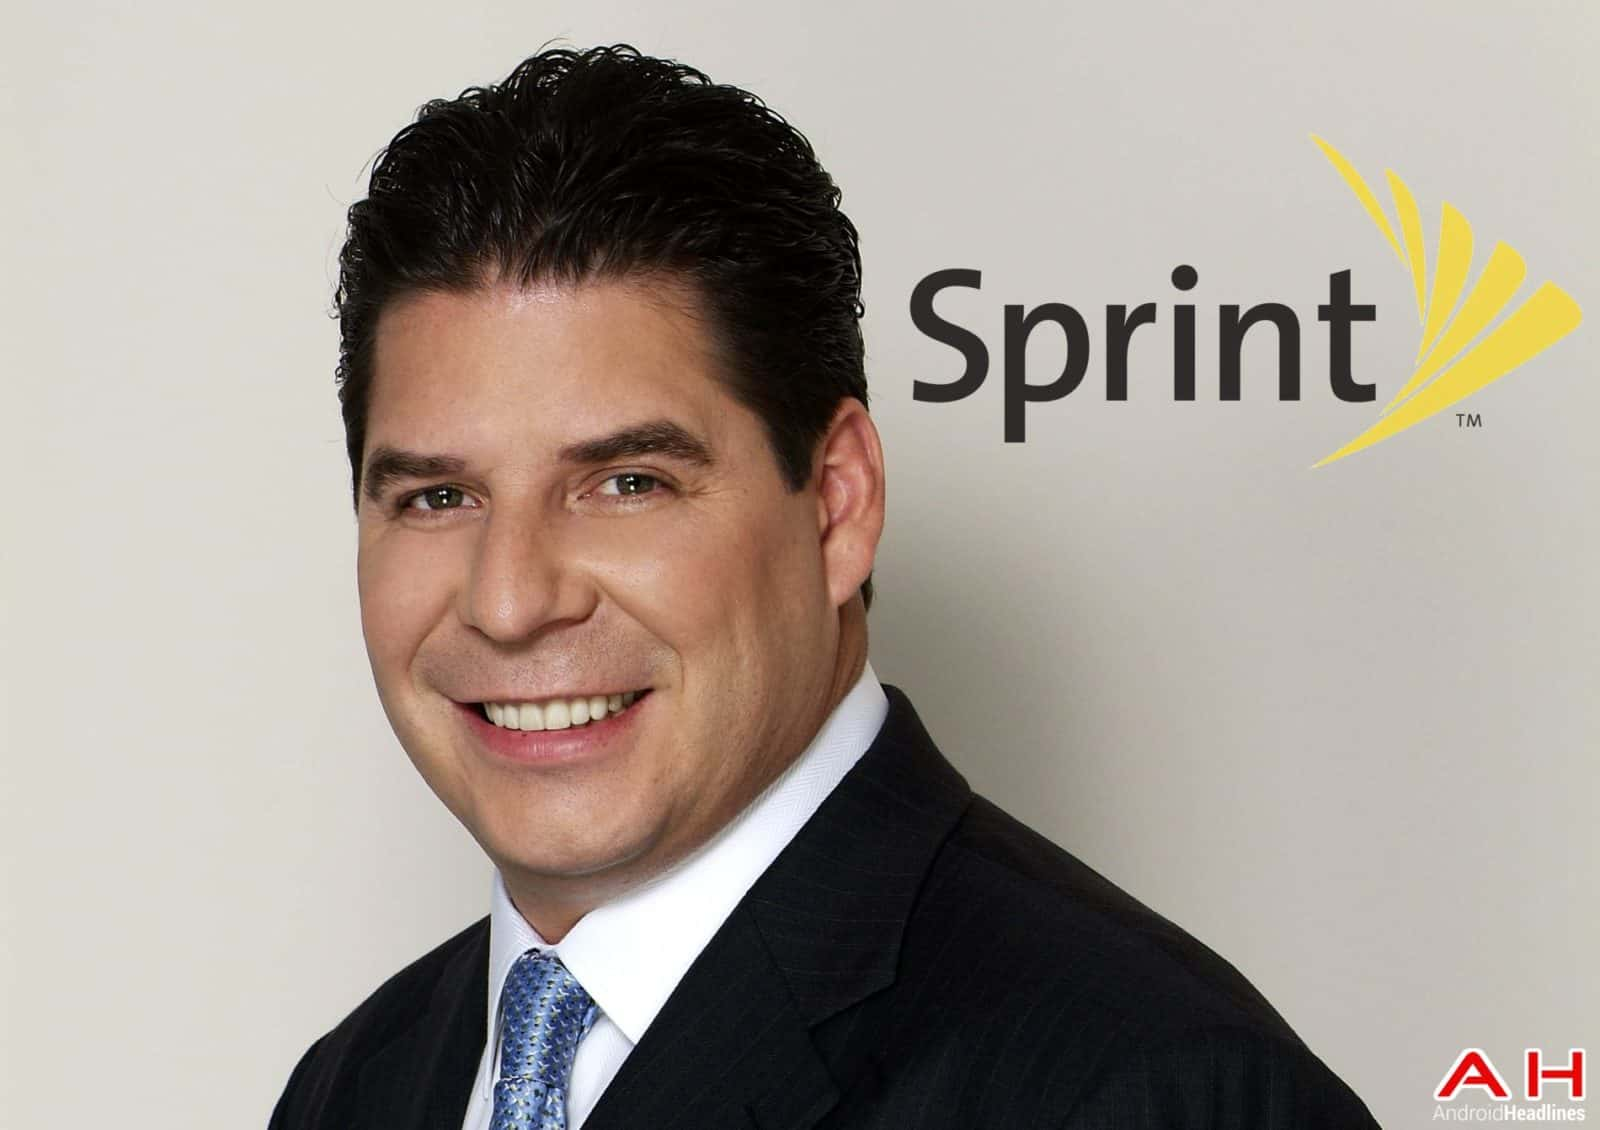 AH Sprint CEO New Marcelo Claure Brightstar